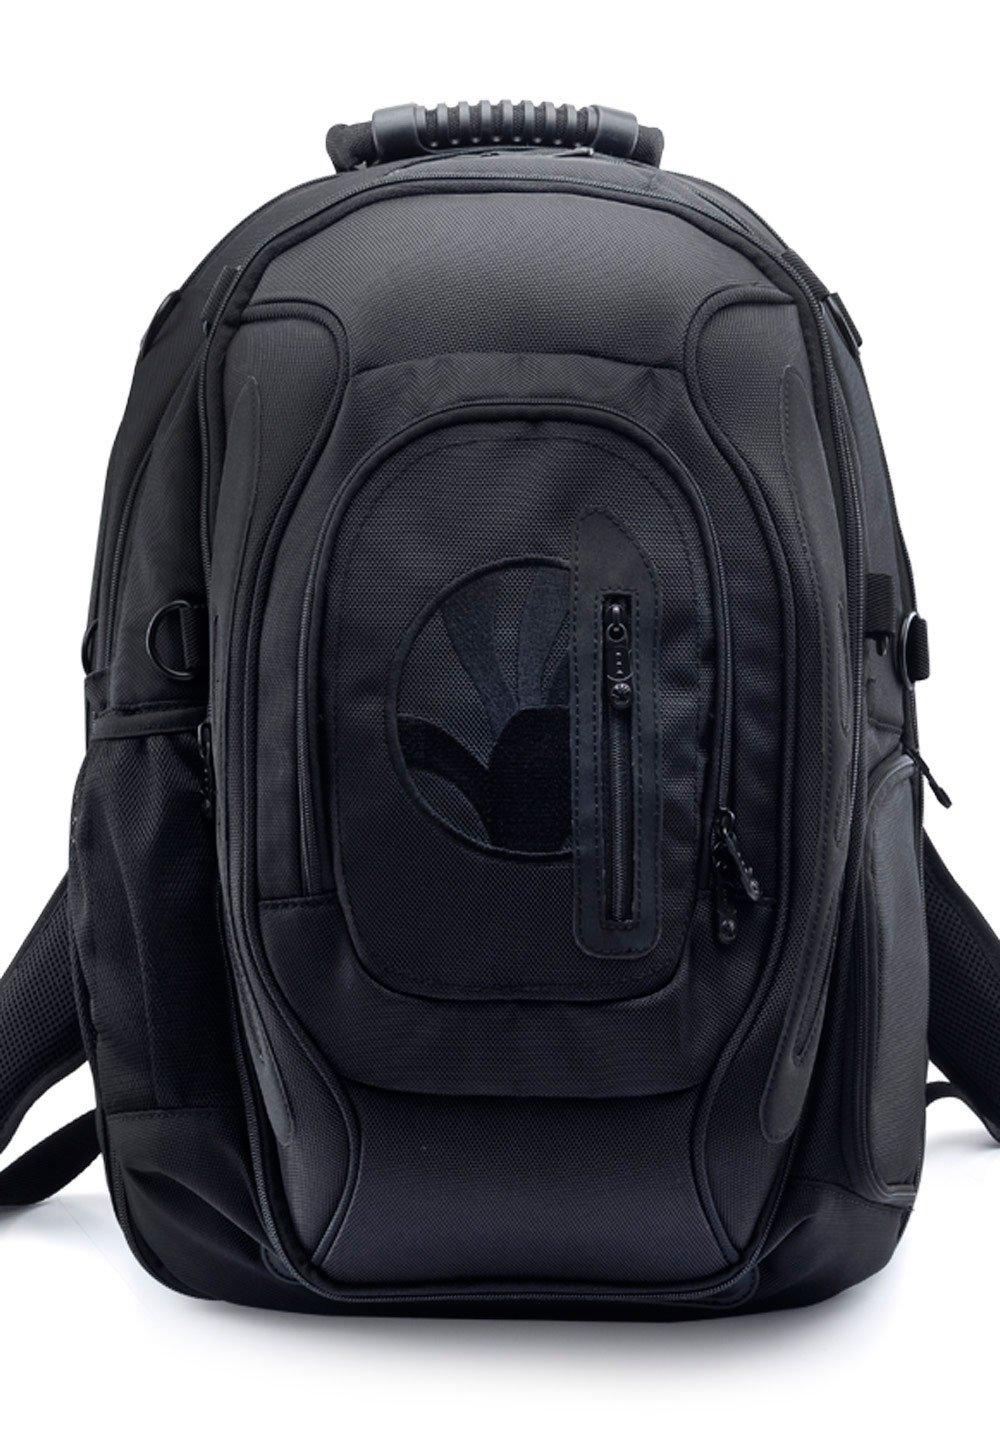 SLAPPA MASK Hi-Five Checkpoint Friendly 17 inch Gaming and Travel Backpack,tons of storage,Ultimate Protection